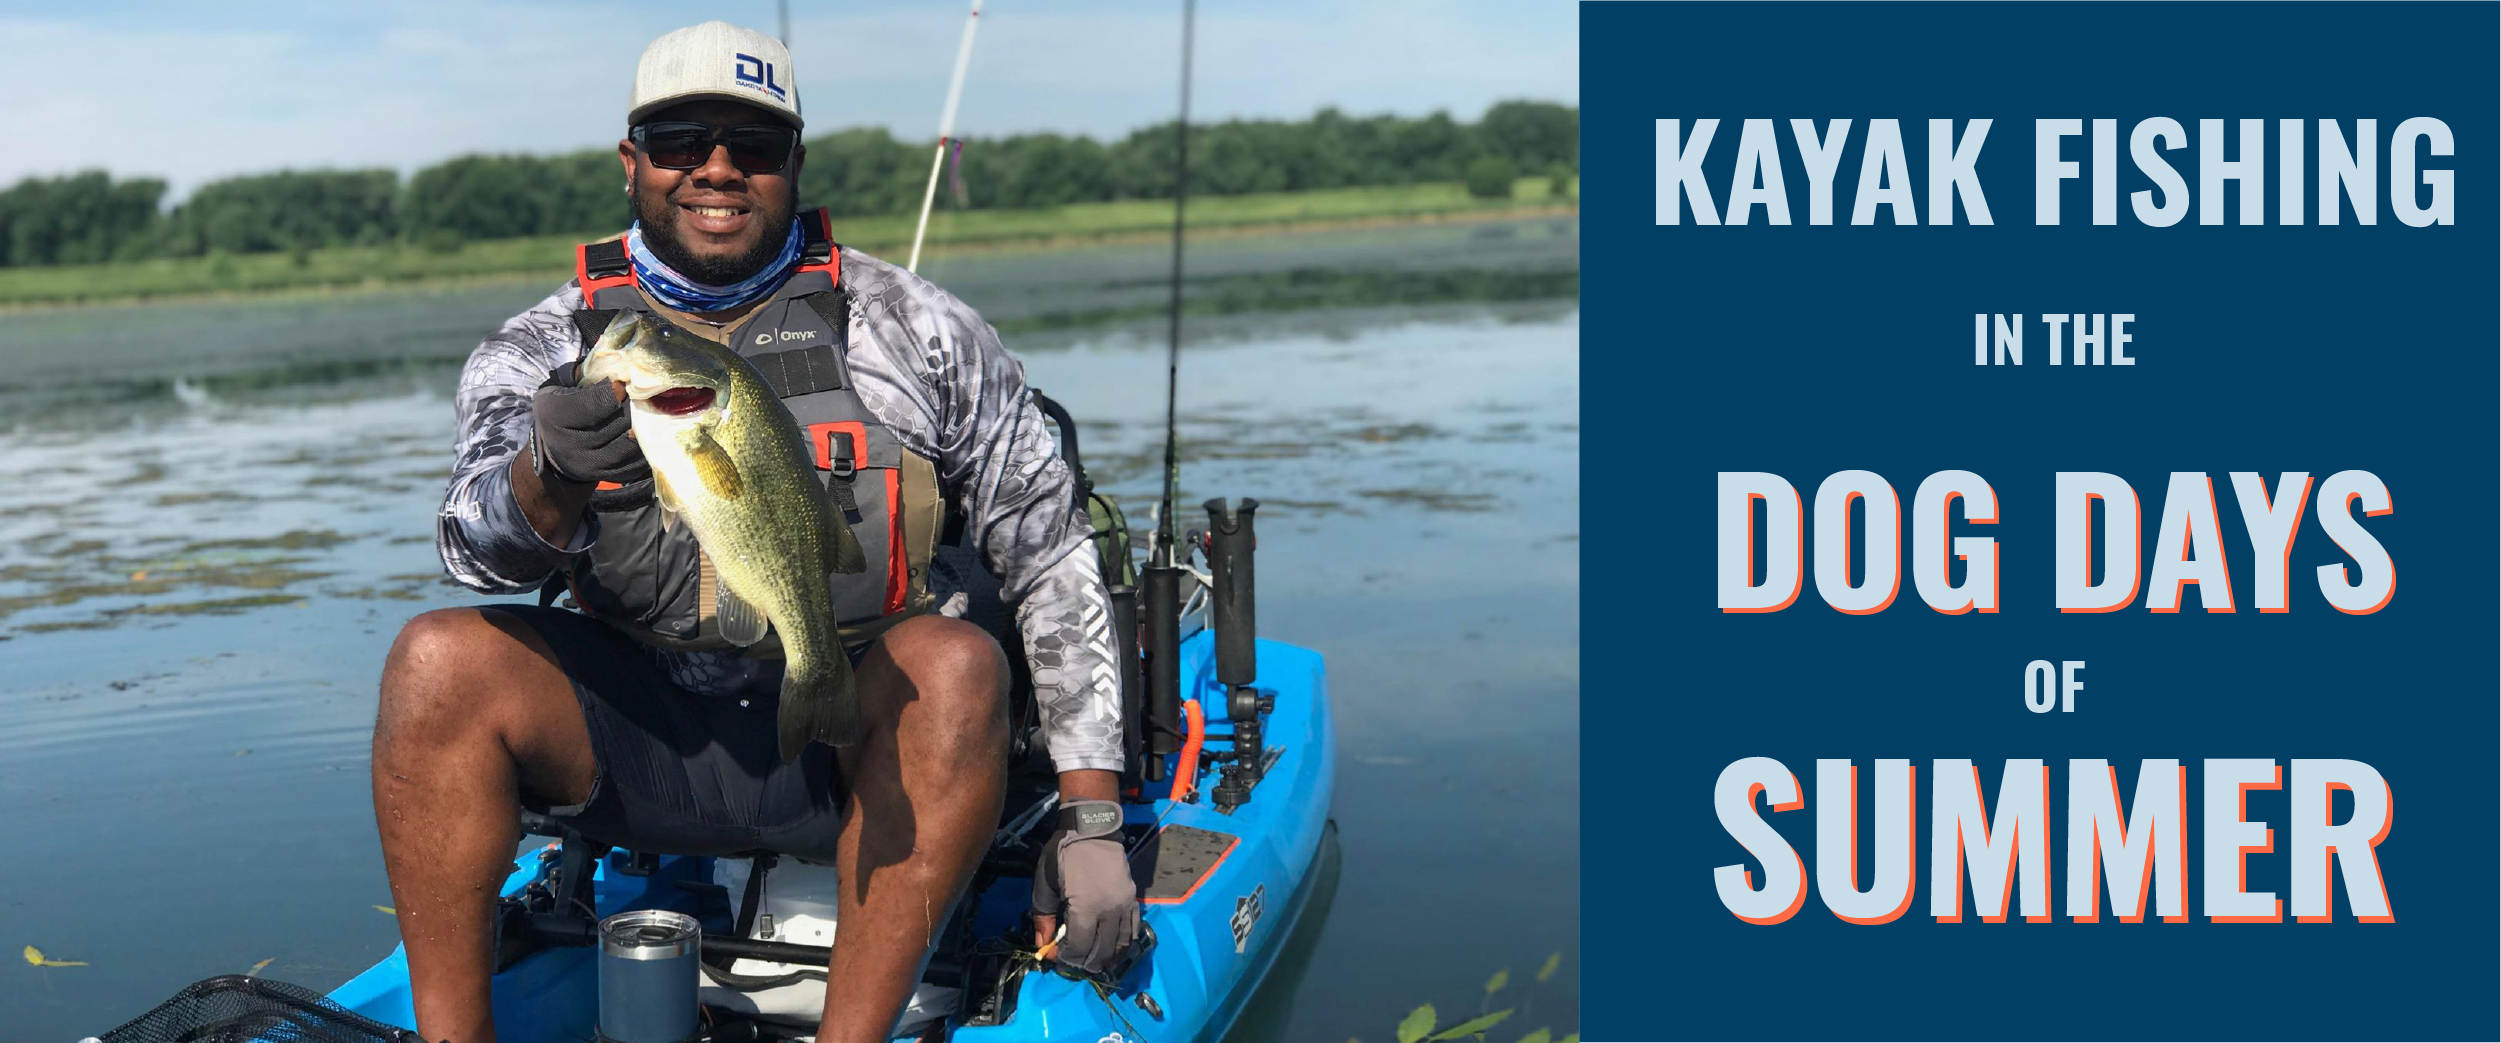 Kayak Fishing in the Dog Days of Summer